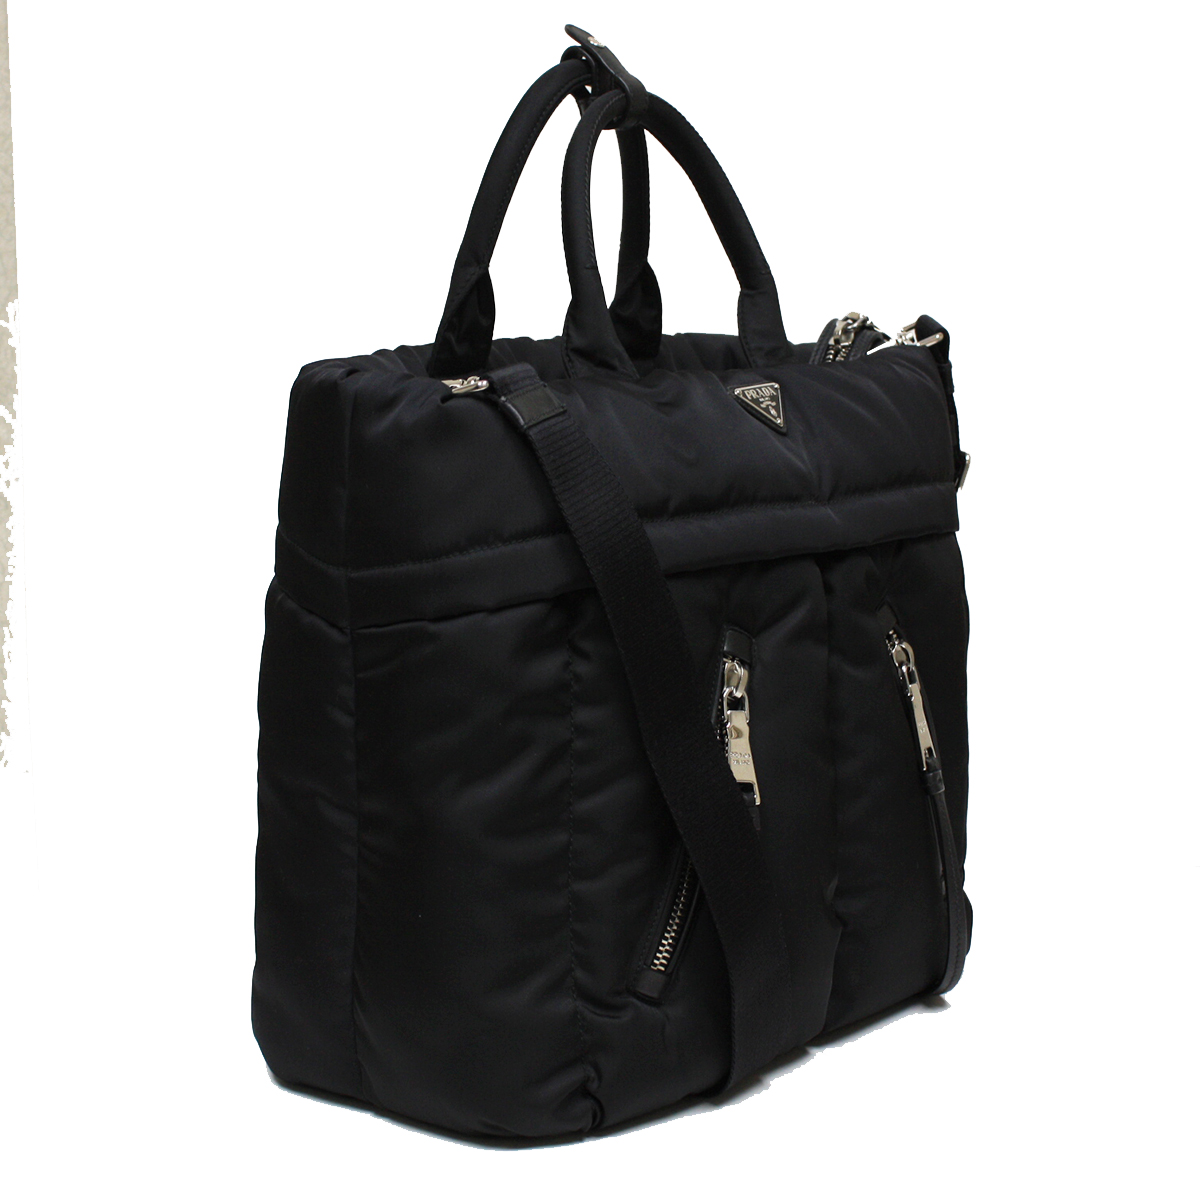 black prada diaper bag prada bags online usa. Black Bedroom Furniture Sets. Home Design Ideas